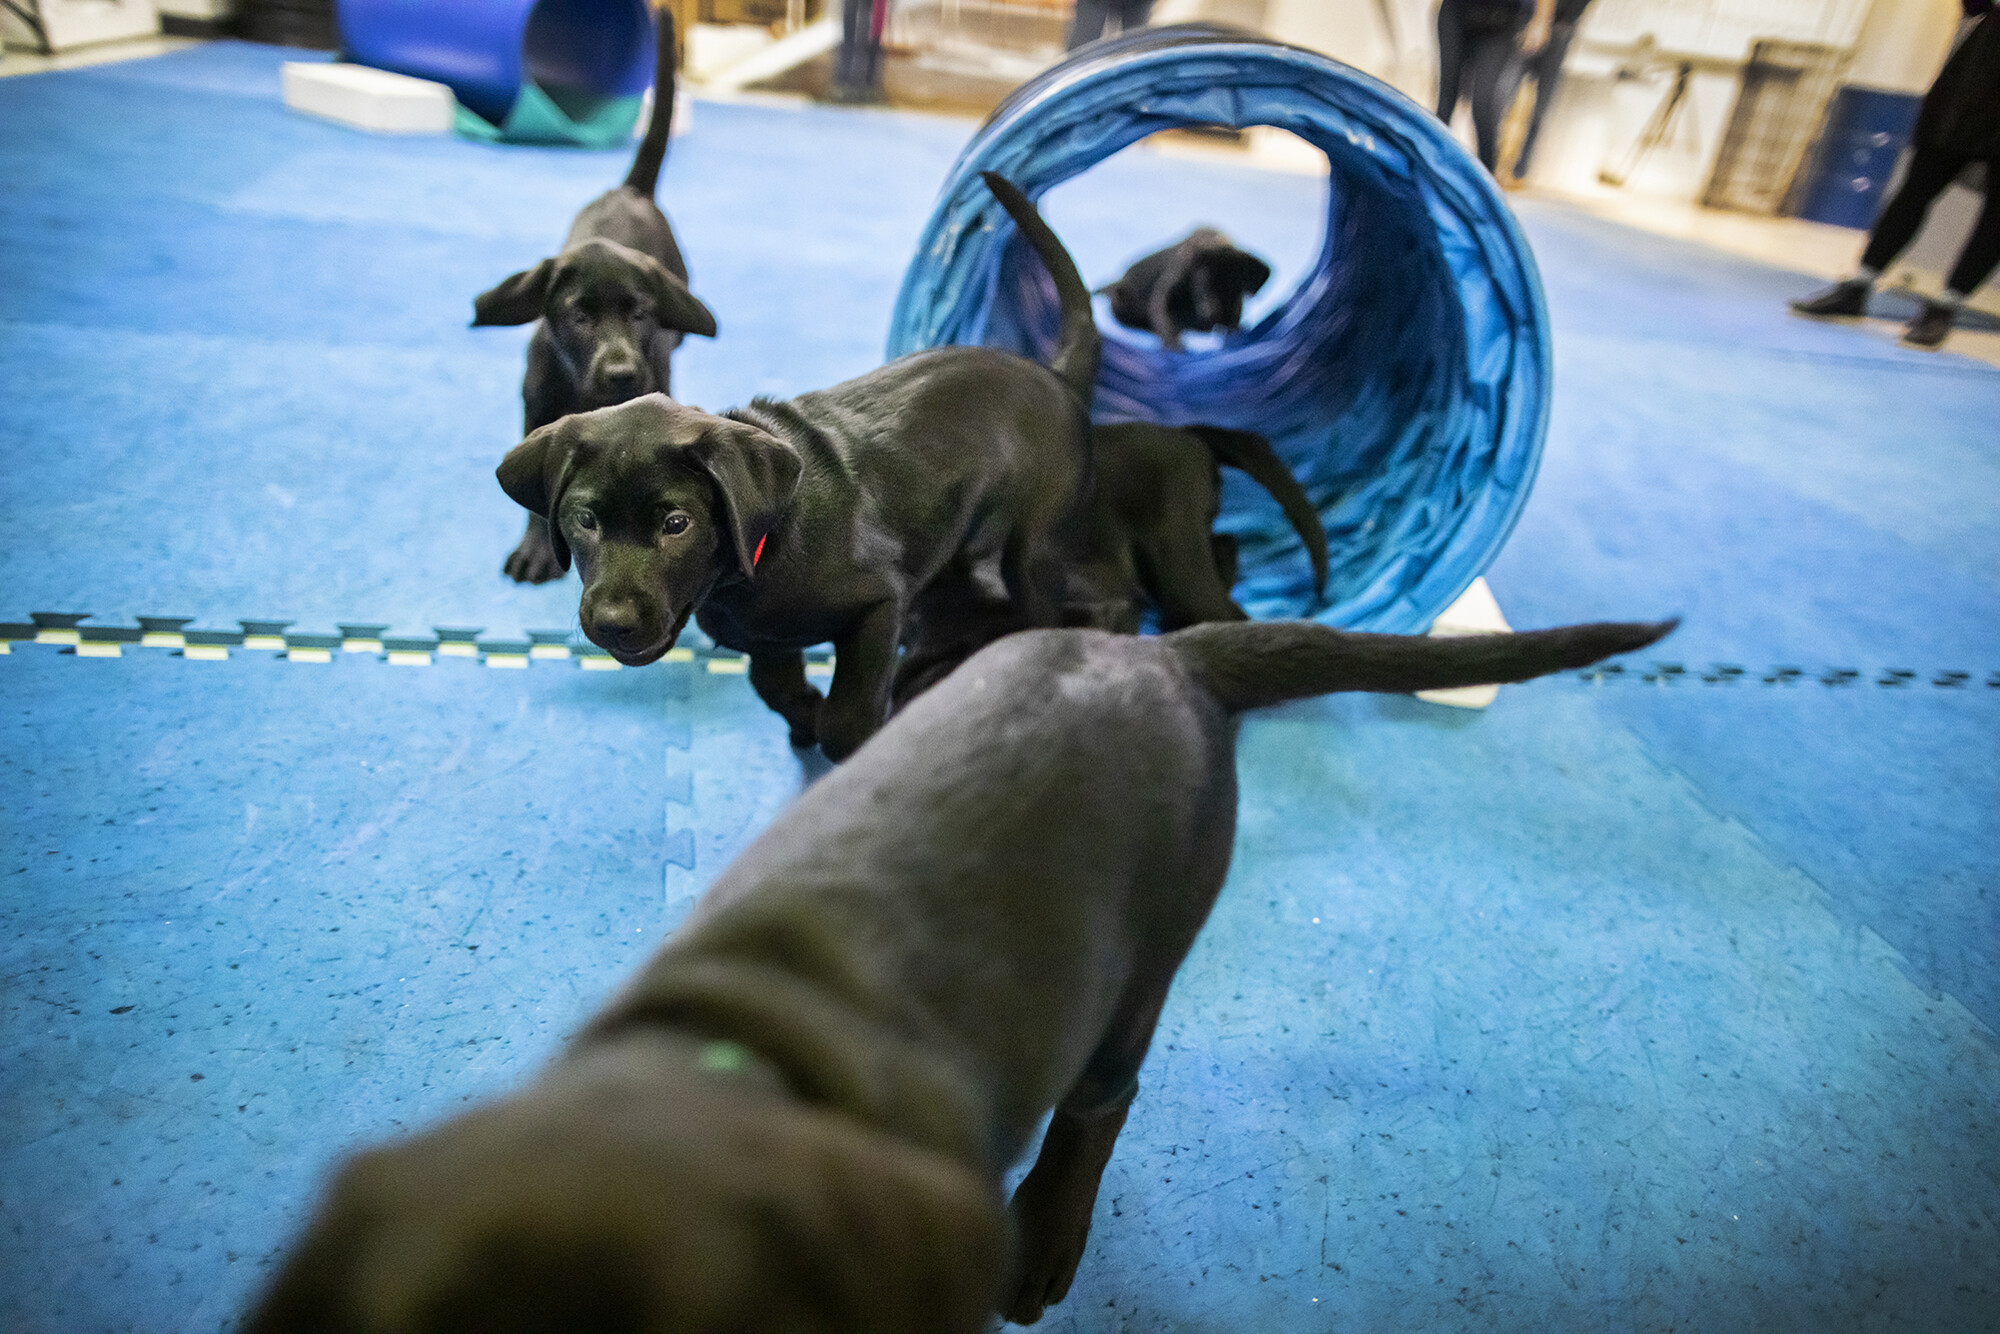 Four U-litter puppies running through a tunnel and on mats at the Working Dog Center